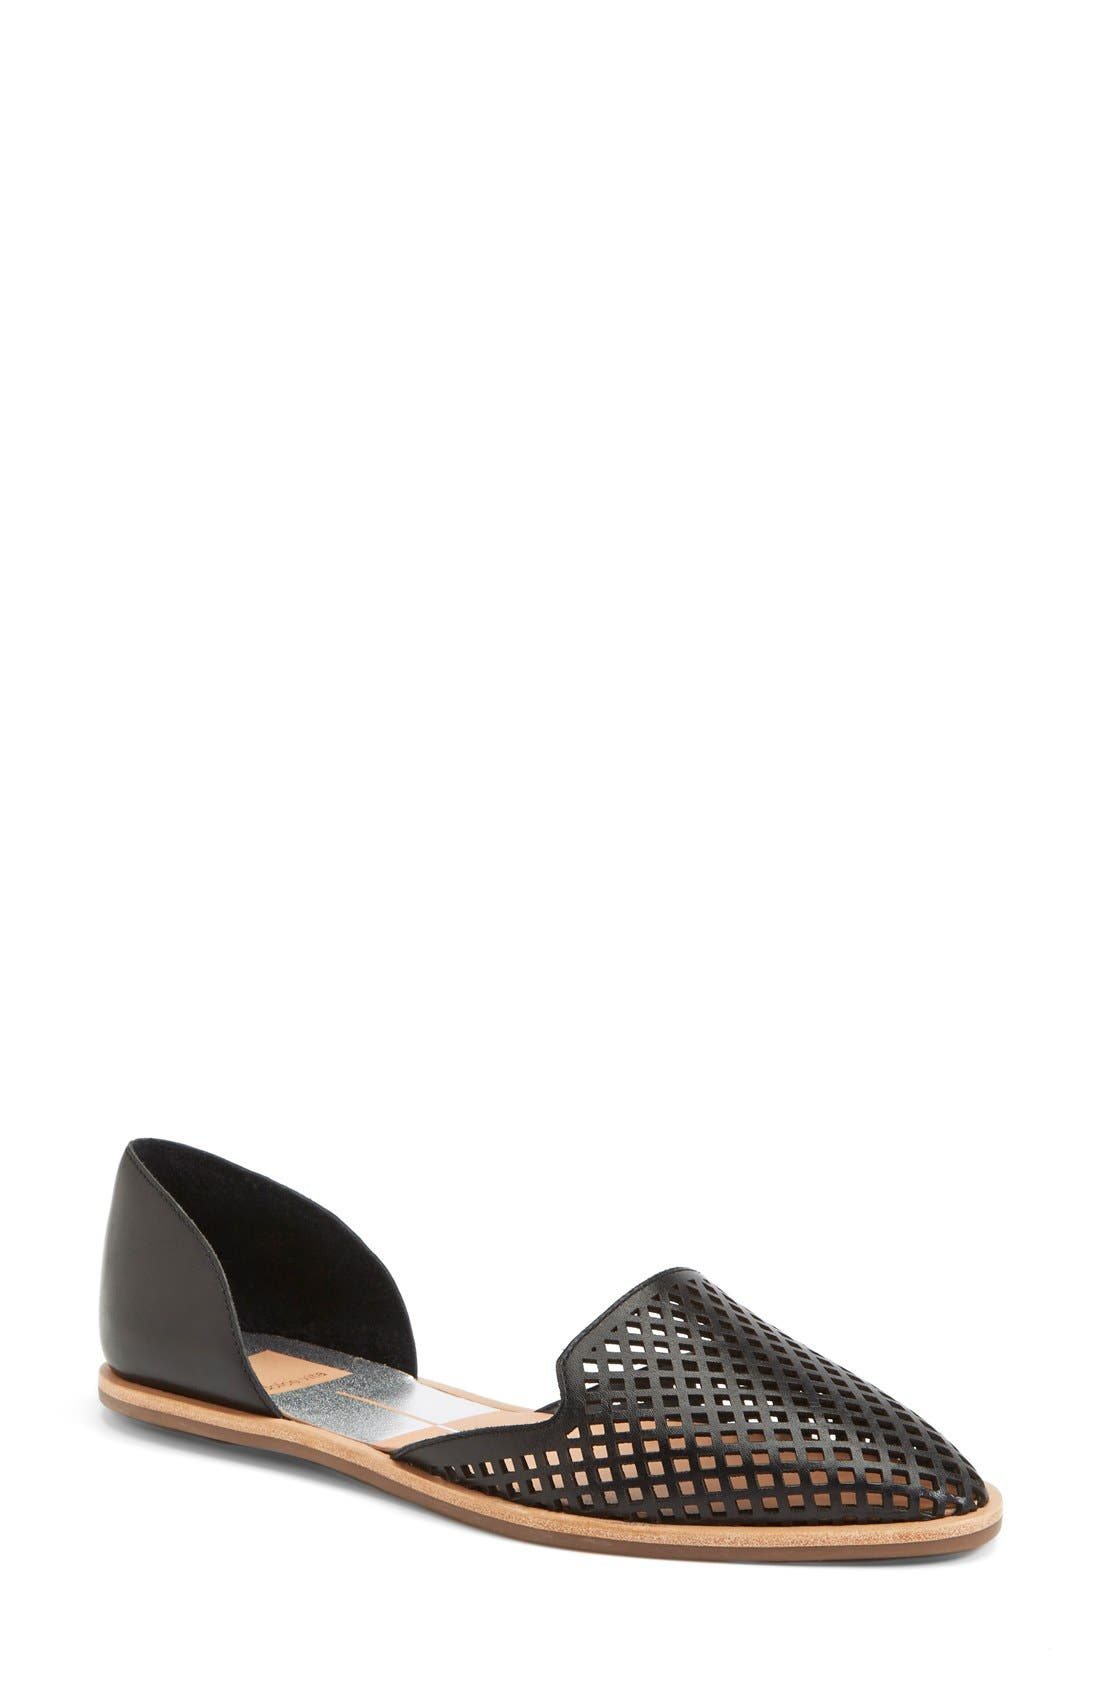 Alternate Image 1 Selected - Dolce Vita 'Laynie' d'Orsay Flat (Women)